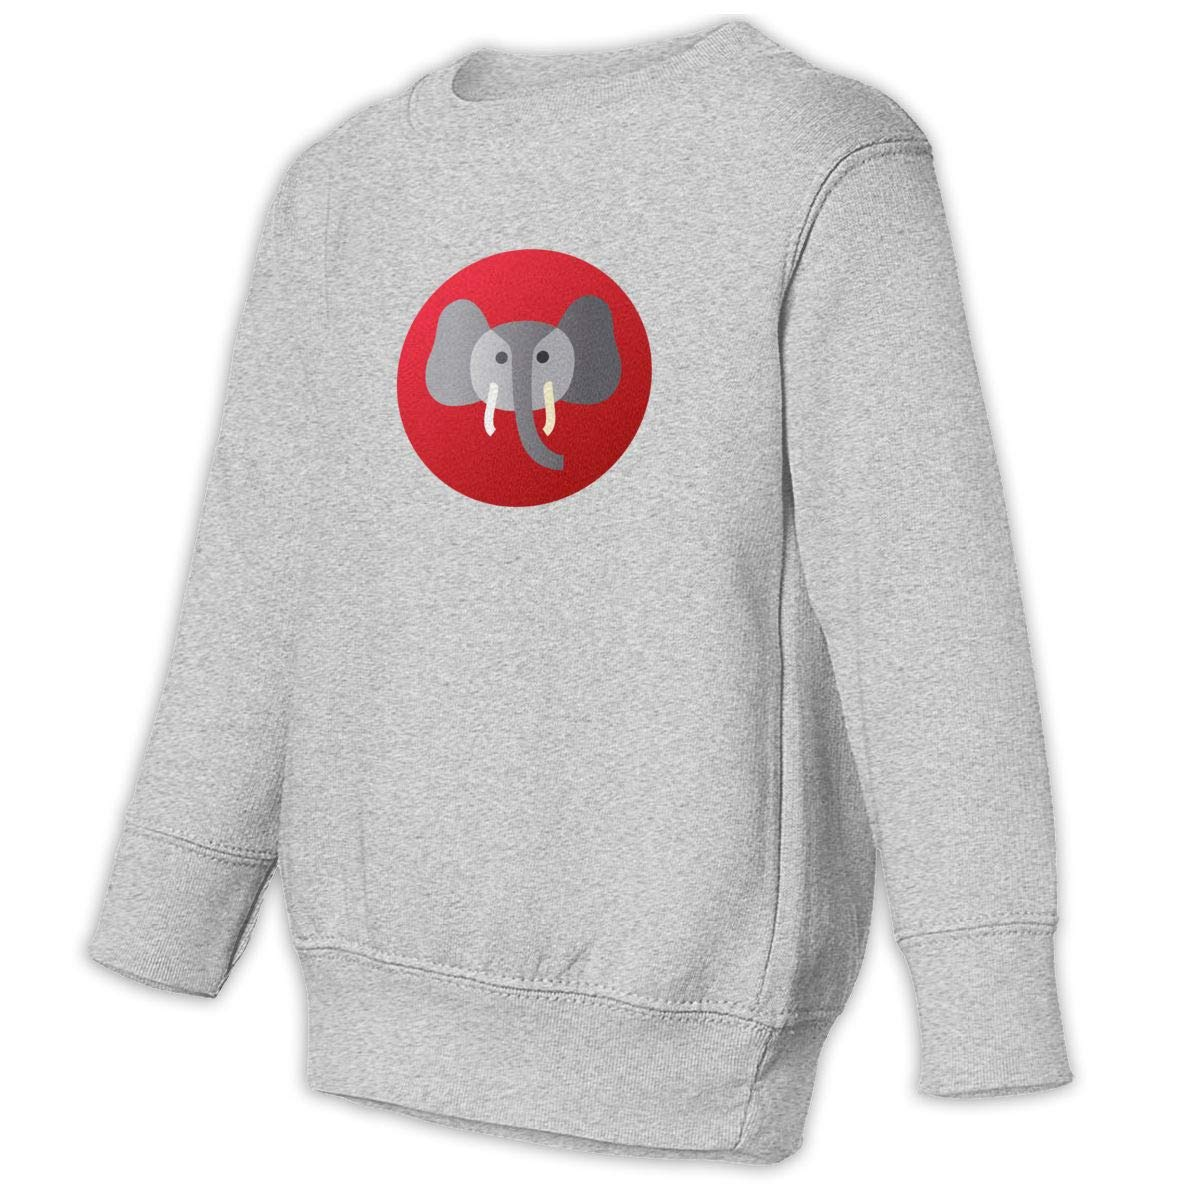 Fleece Pull Over Sweatshirt for Boys Girls Kids Youth Elephant Unisex Toddler Hoodies